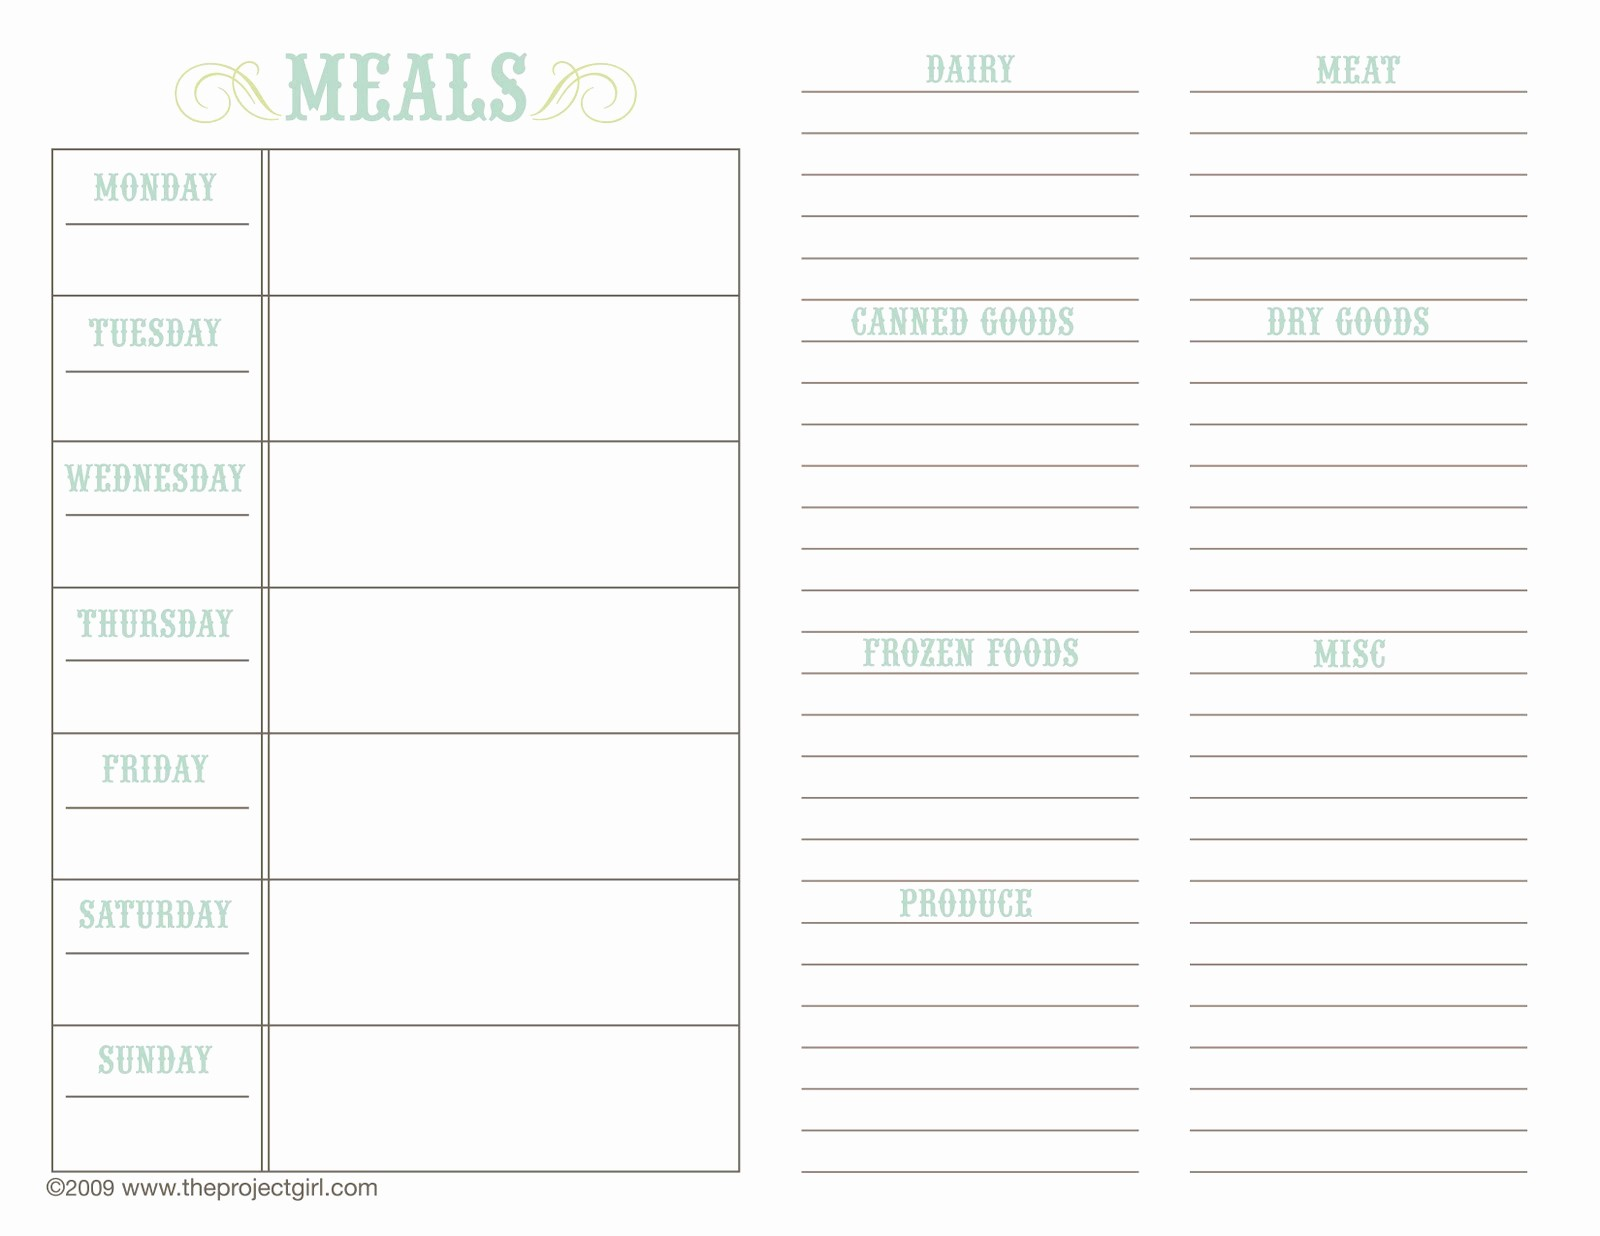 Weekly Meal Planning Template Free Awesome Weekly Meal Planner Template Beepmunk